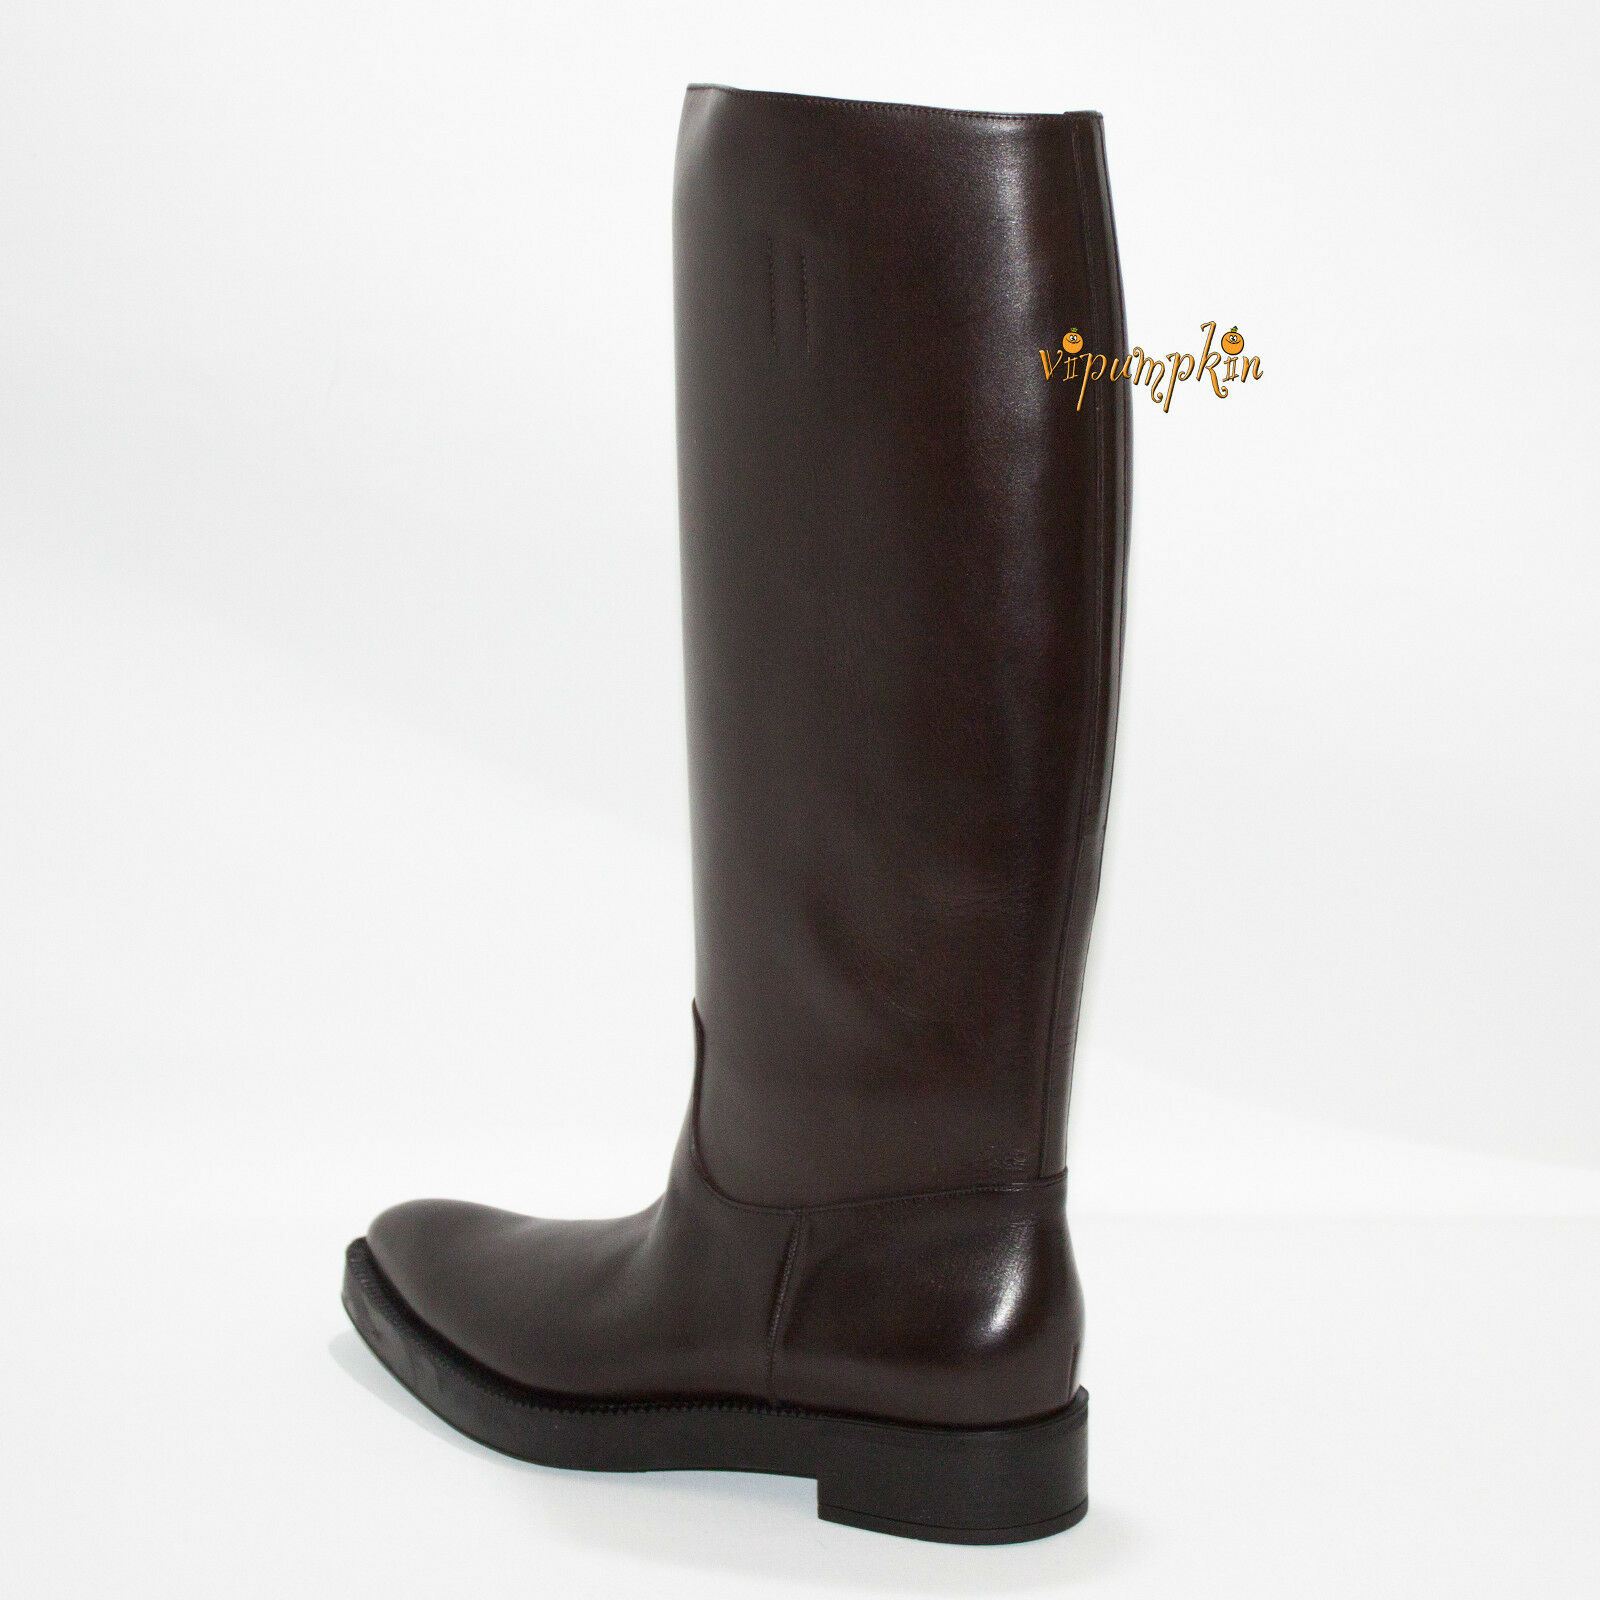 PRADA PRADA PRADA CALZATURE women PRESTIGE CALF LEATHER BOOTS Mgold 1W394E NEW 8.5 US 38.5 EU 5a5580